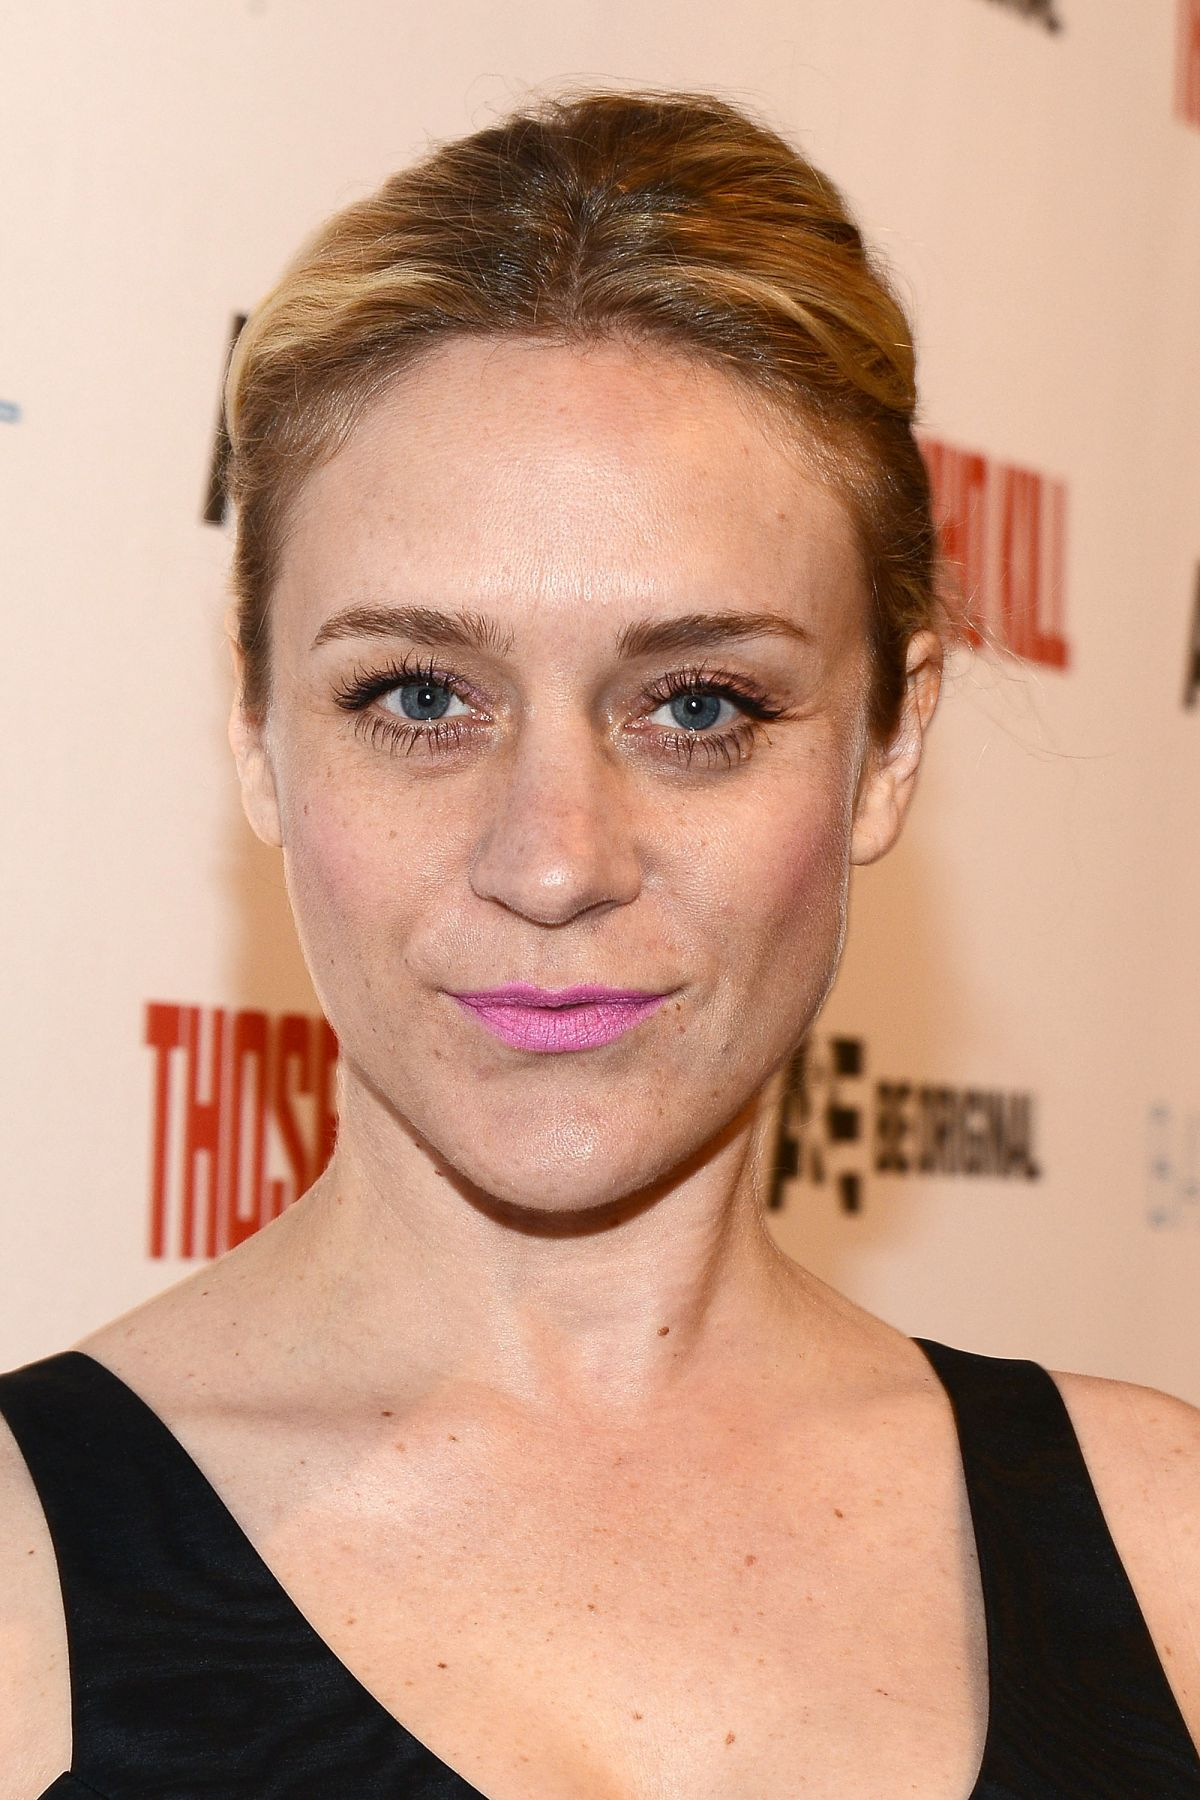 Mac Makeup Wallpaper Iphone Chloe Sevigny Wallpapers High Quality Download Free